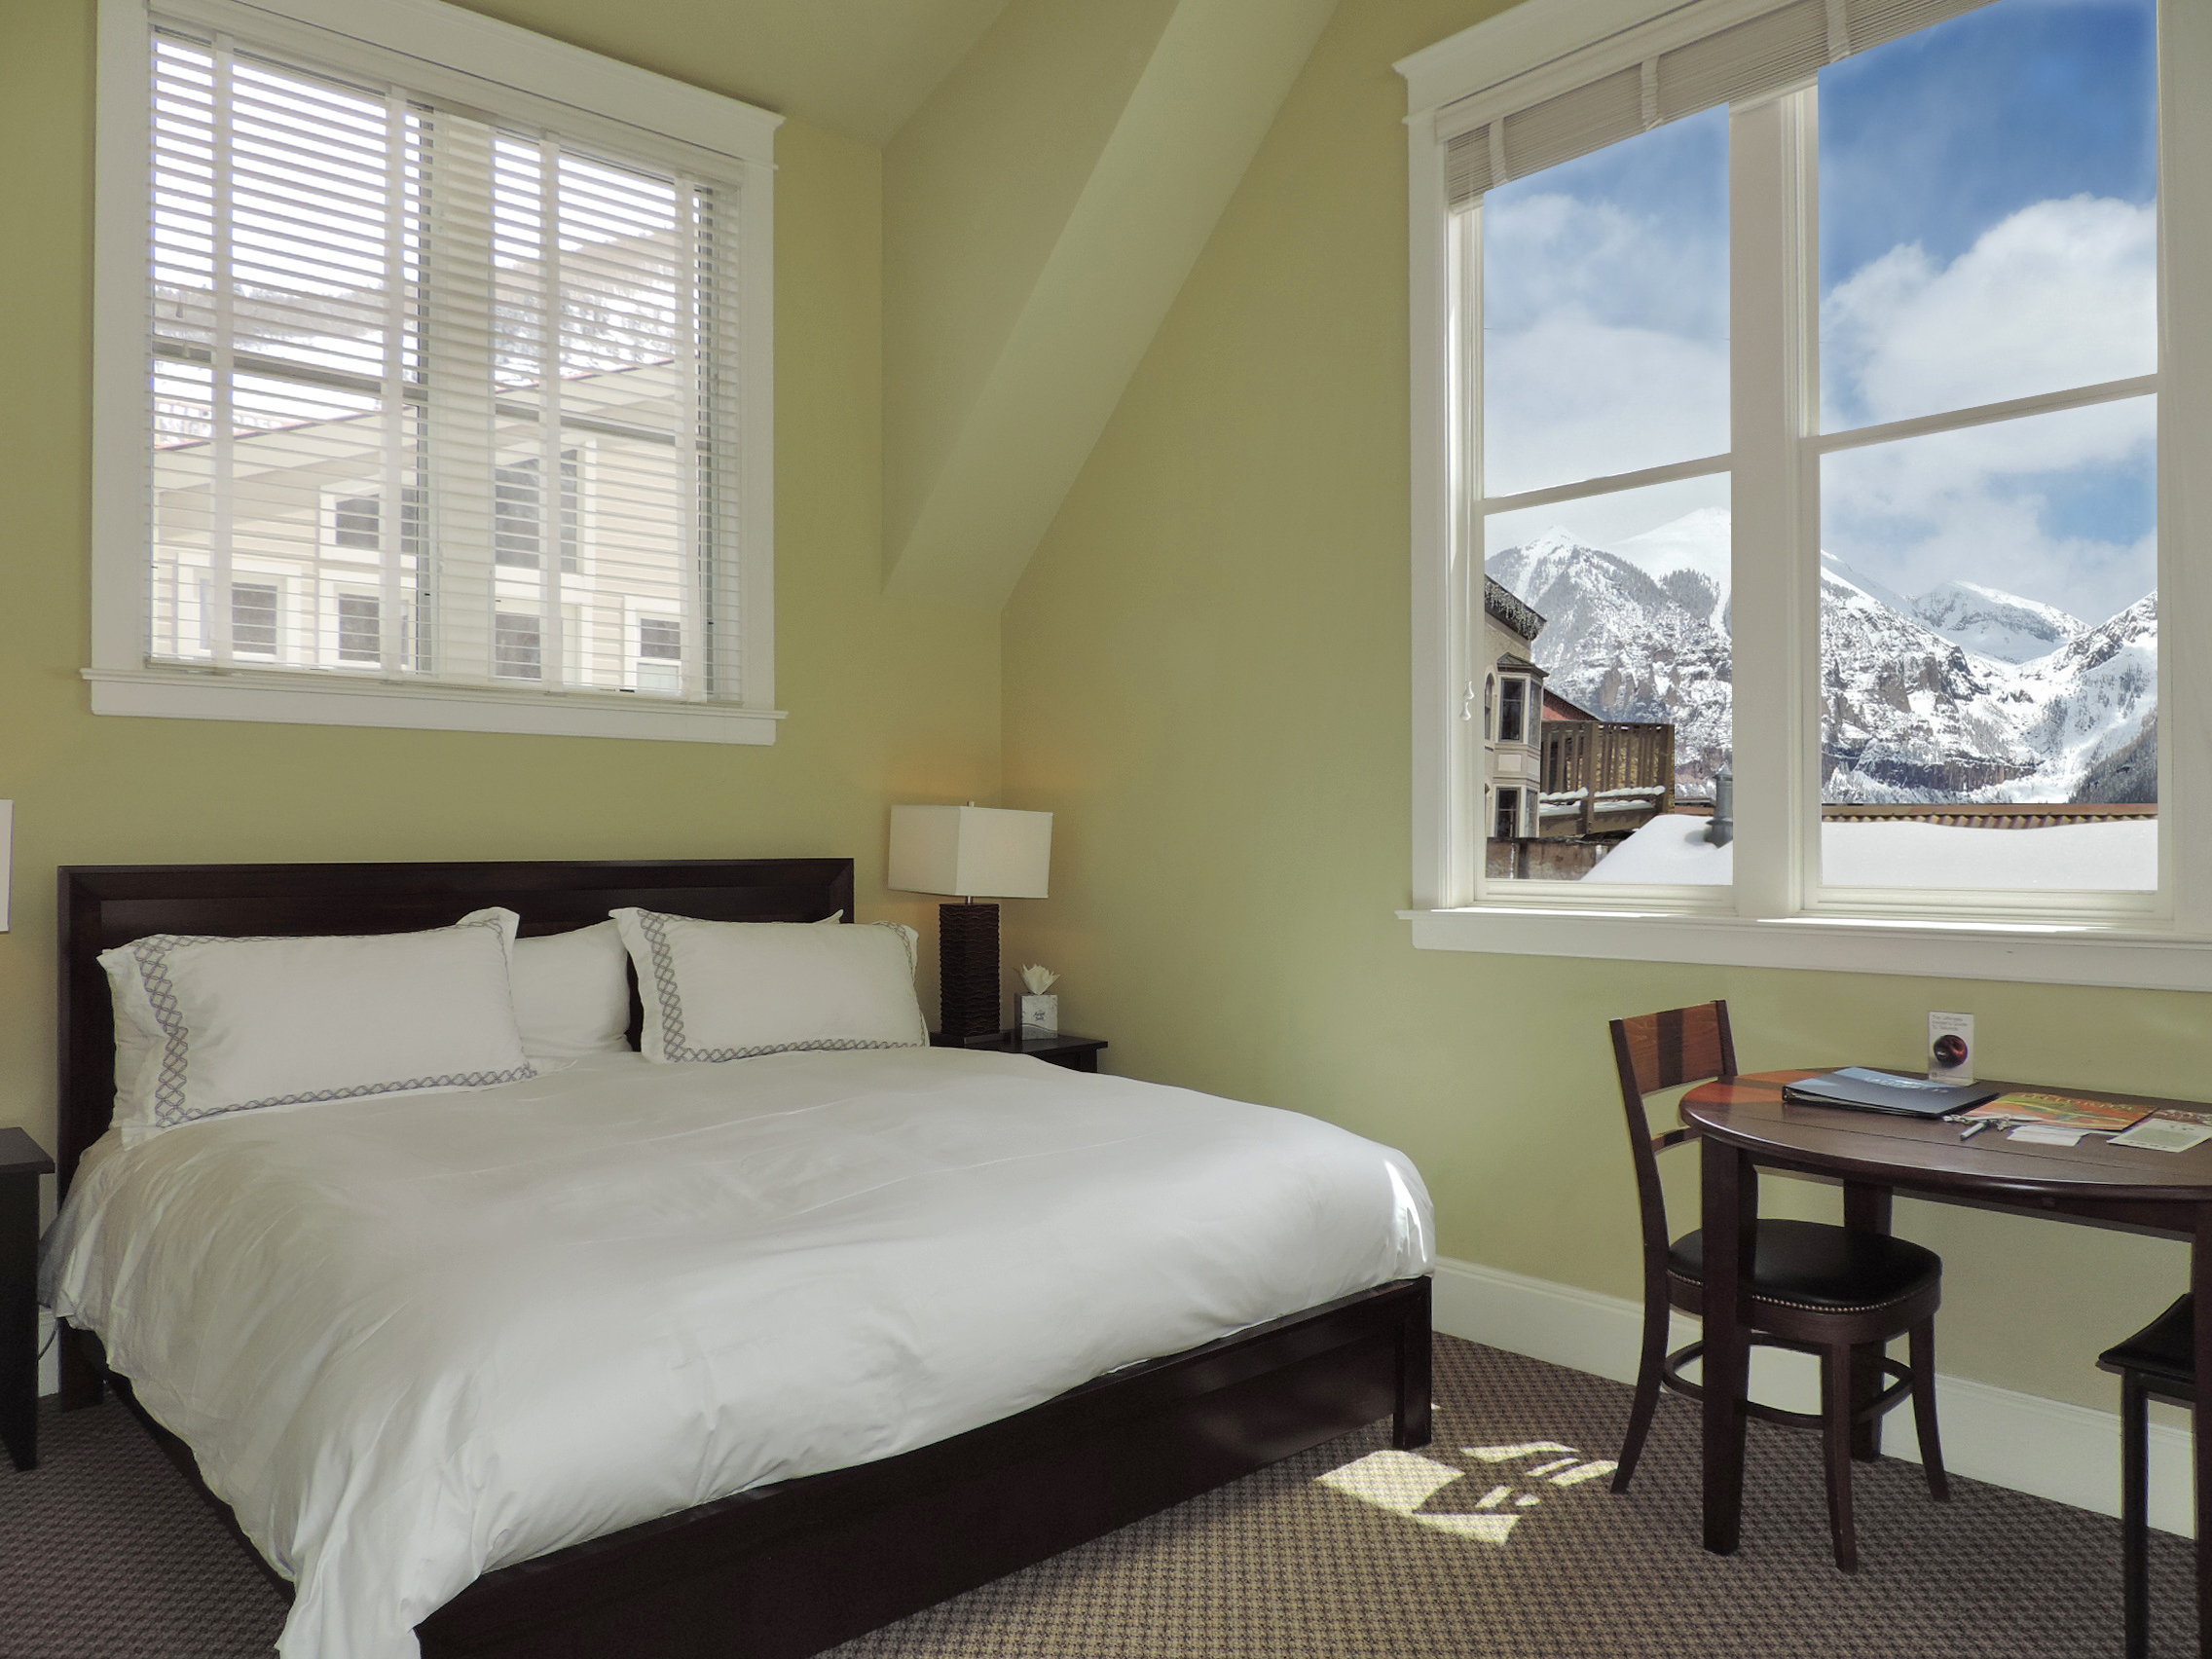 Montana Placer Inn - Room 4 - King Bed with Private Bath